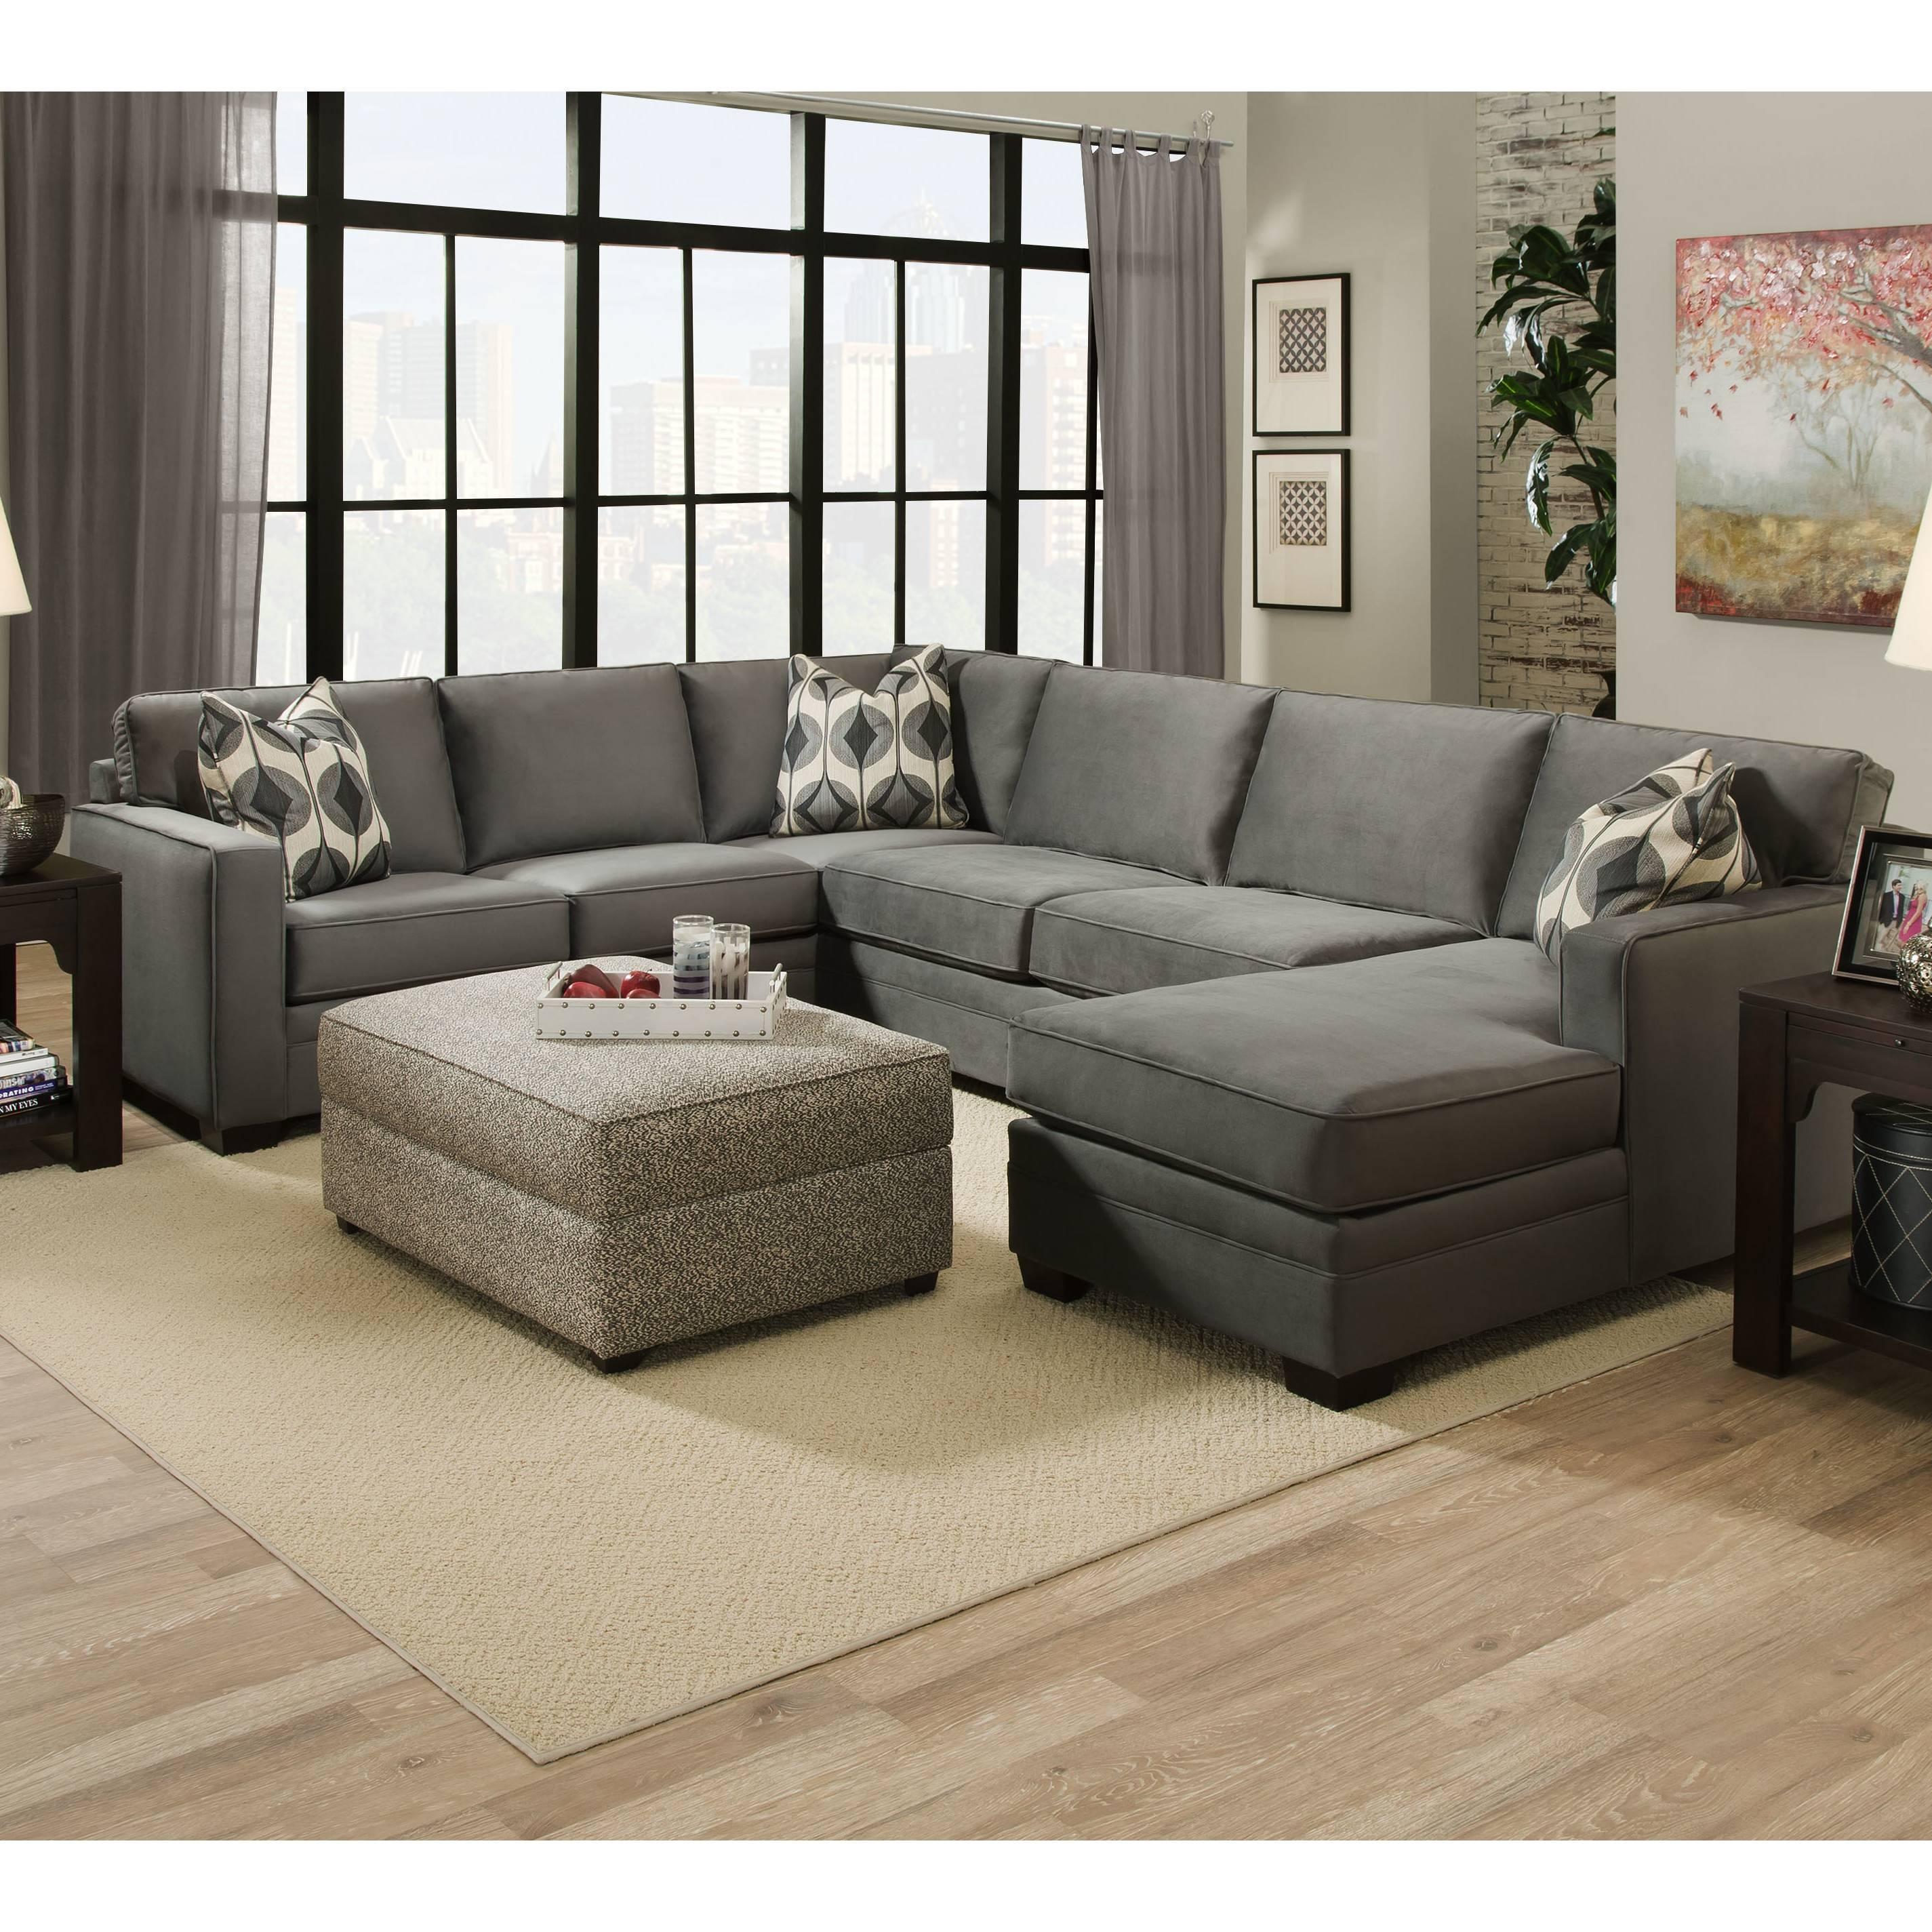 The Most Popular Bauhaus Sectional Sofa 76 For Your American Made intended for American Made Sectional Sofas (Image 27 of 30)